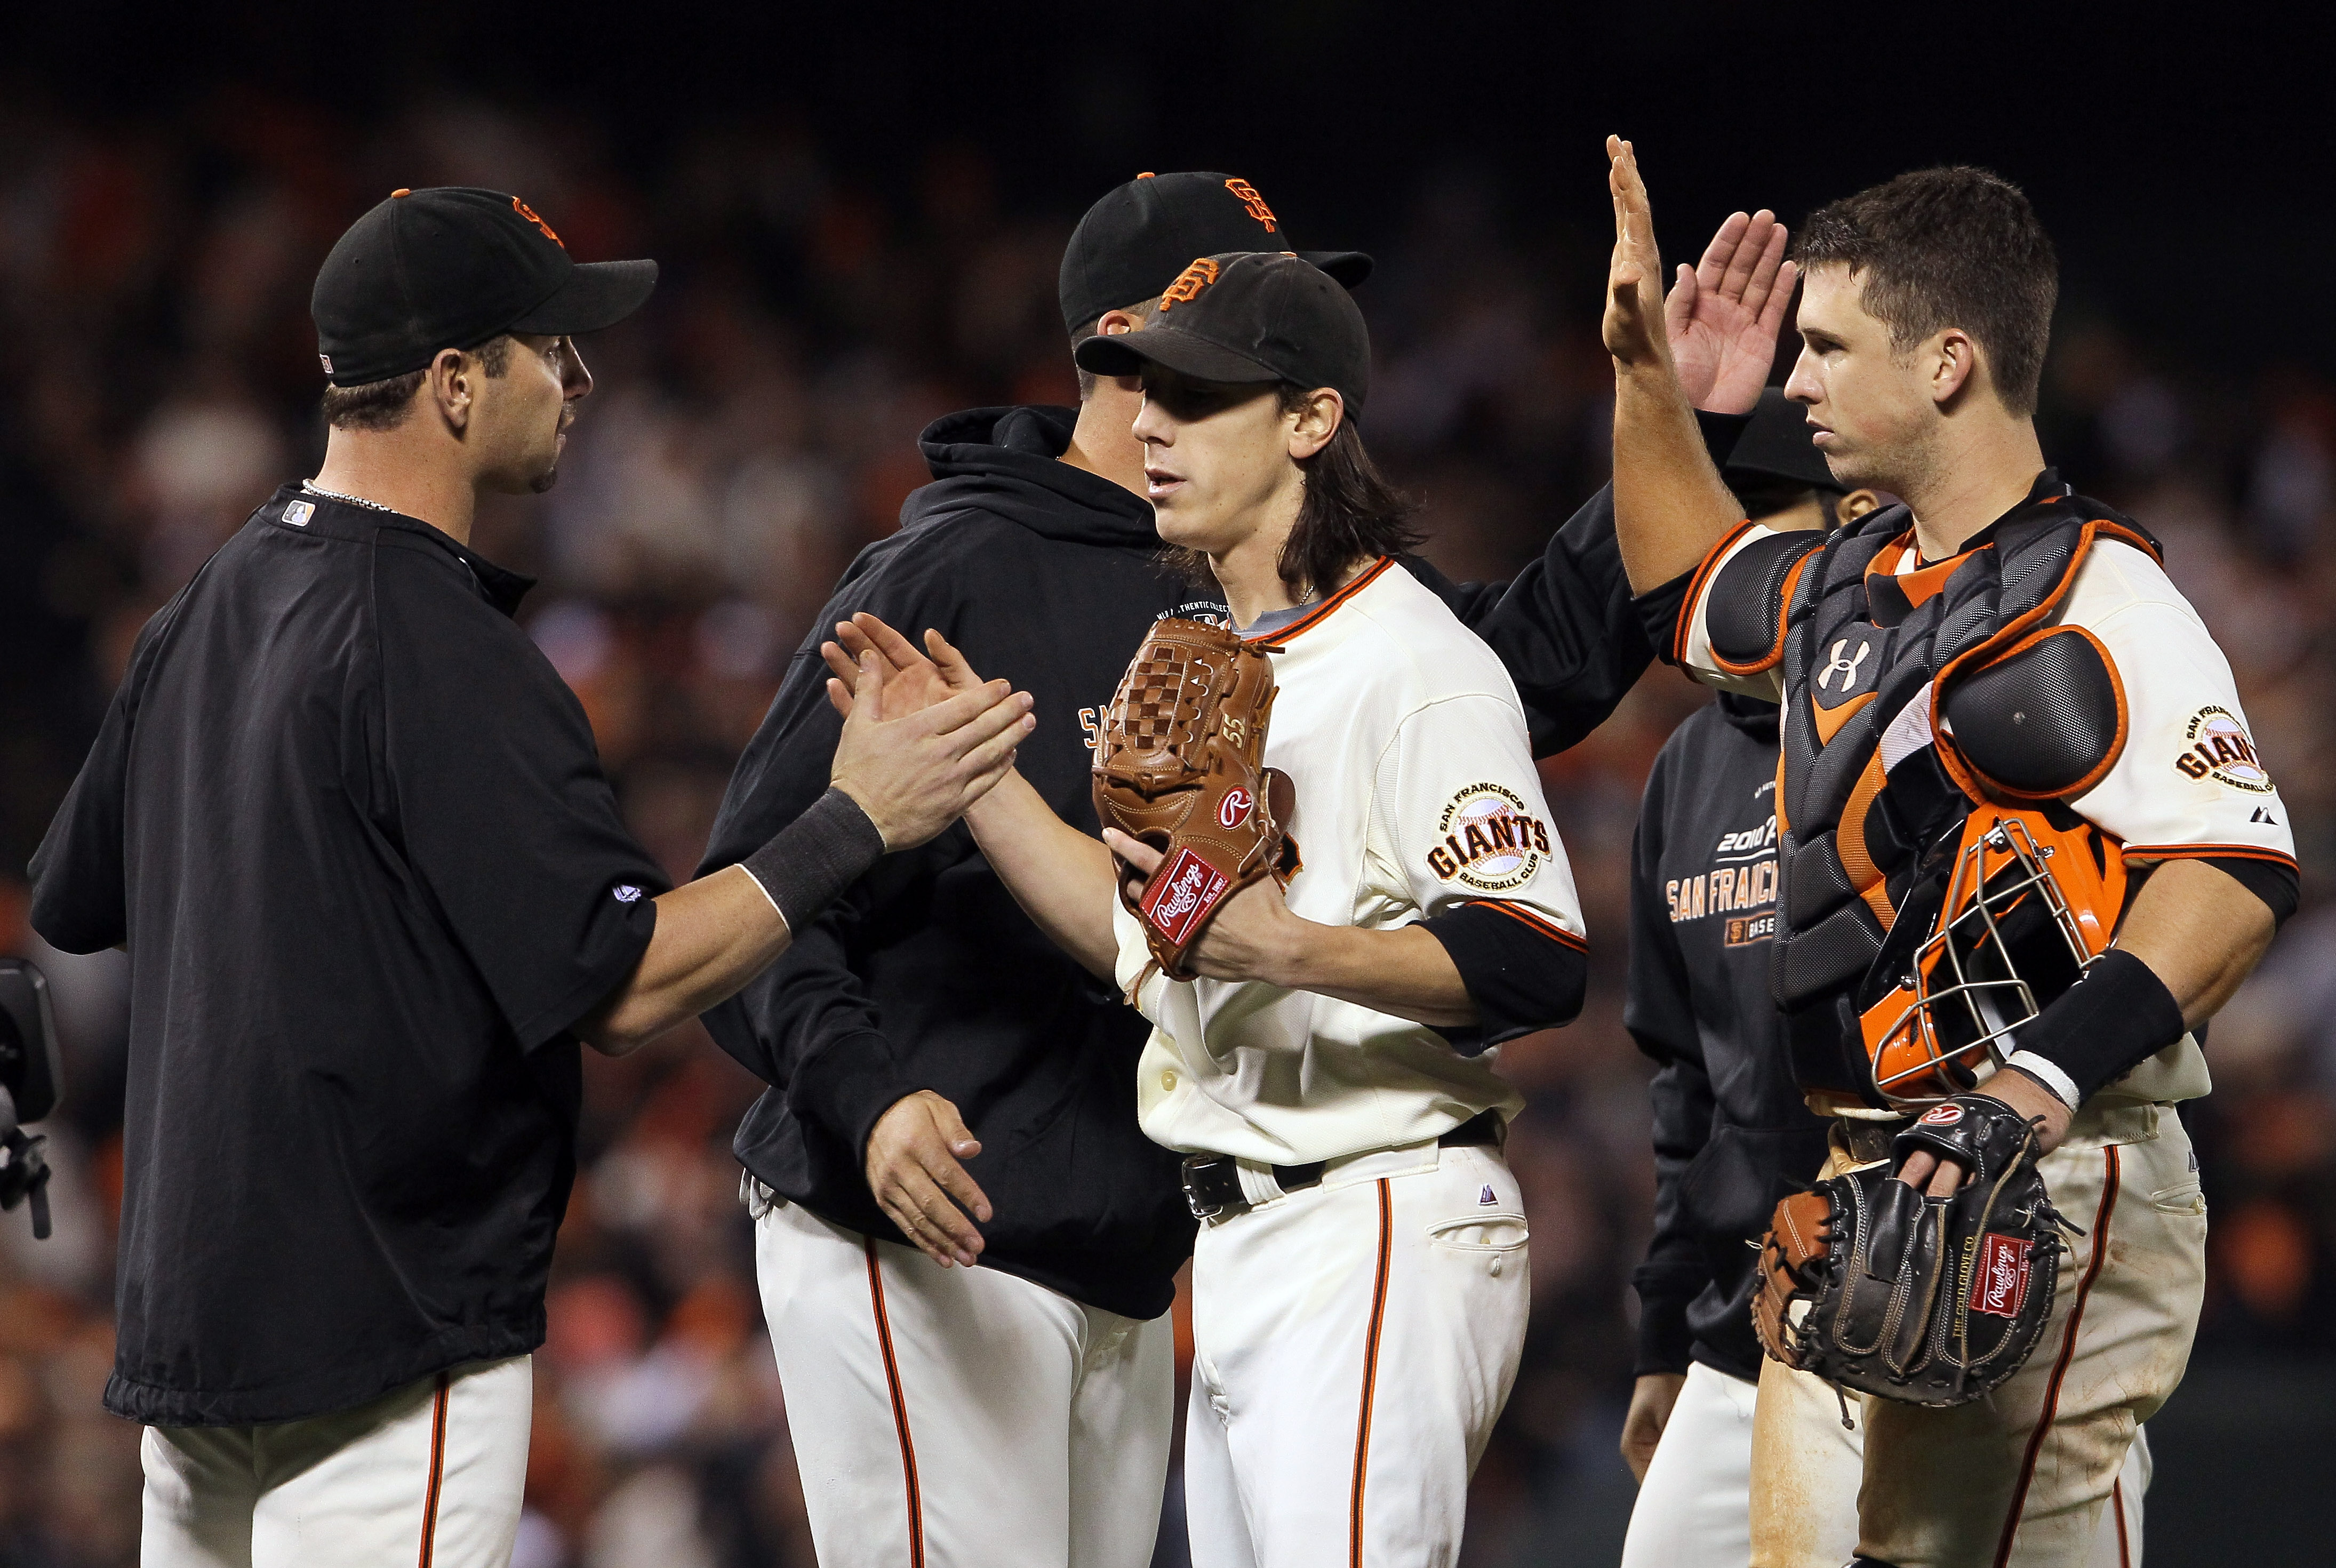 SAN FRANCISCO - OCTOBER 07:  Tim Lincecum #55 of the San Francisco Giants and teammate Buster Posey #28 are congratulated after pitching a complete game against the Atlanta Braves during game one of the National League Division Series at AT&T Park on Octo